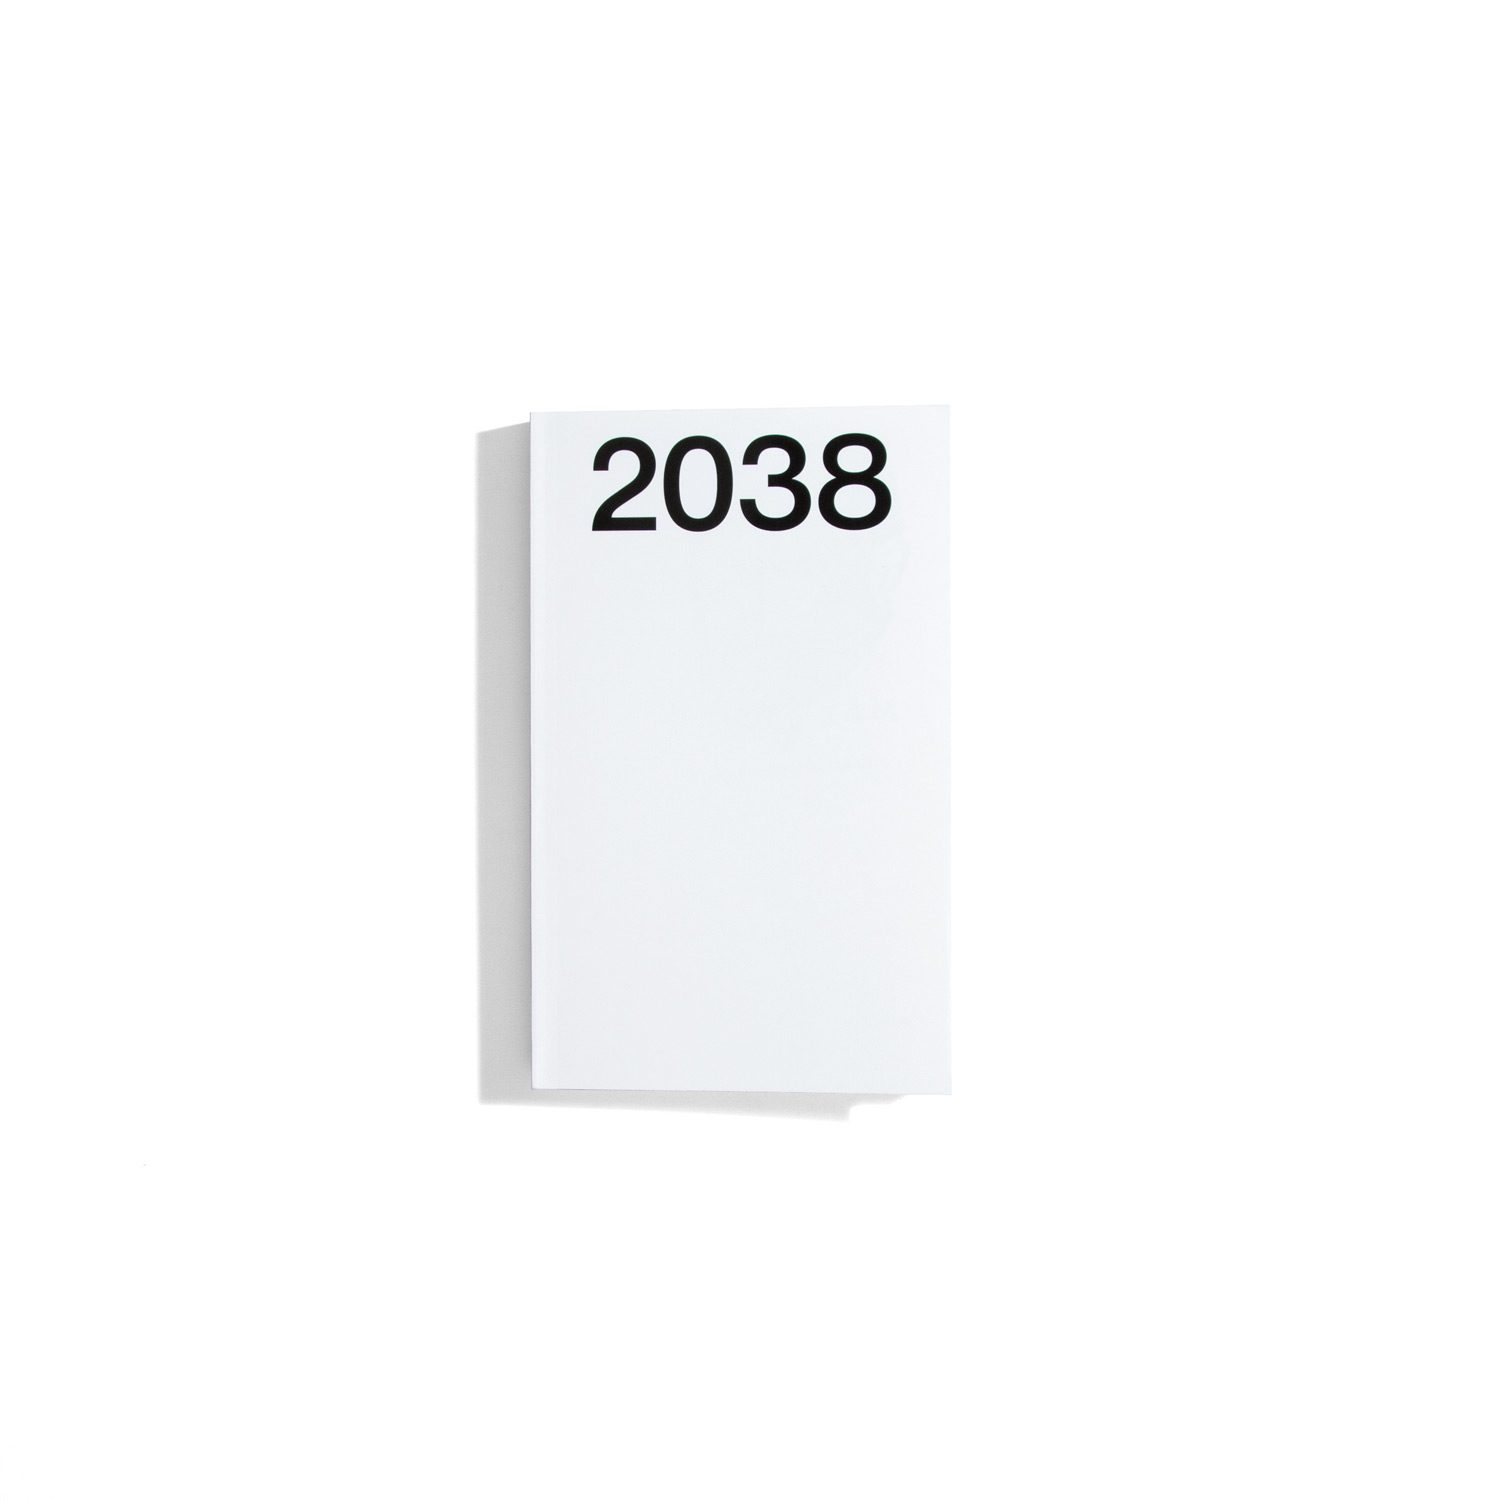 2038 - The New Serenity